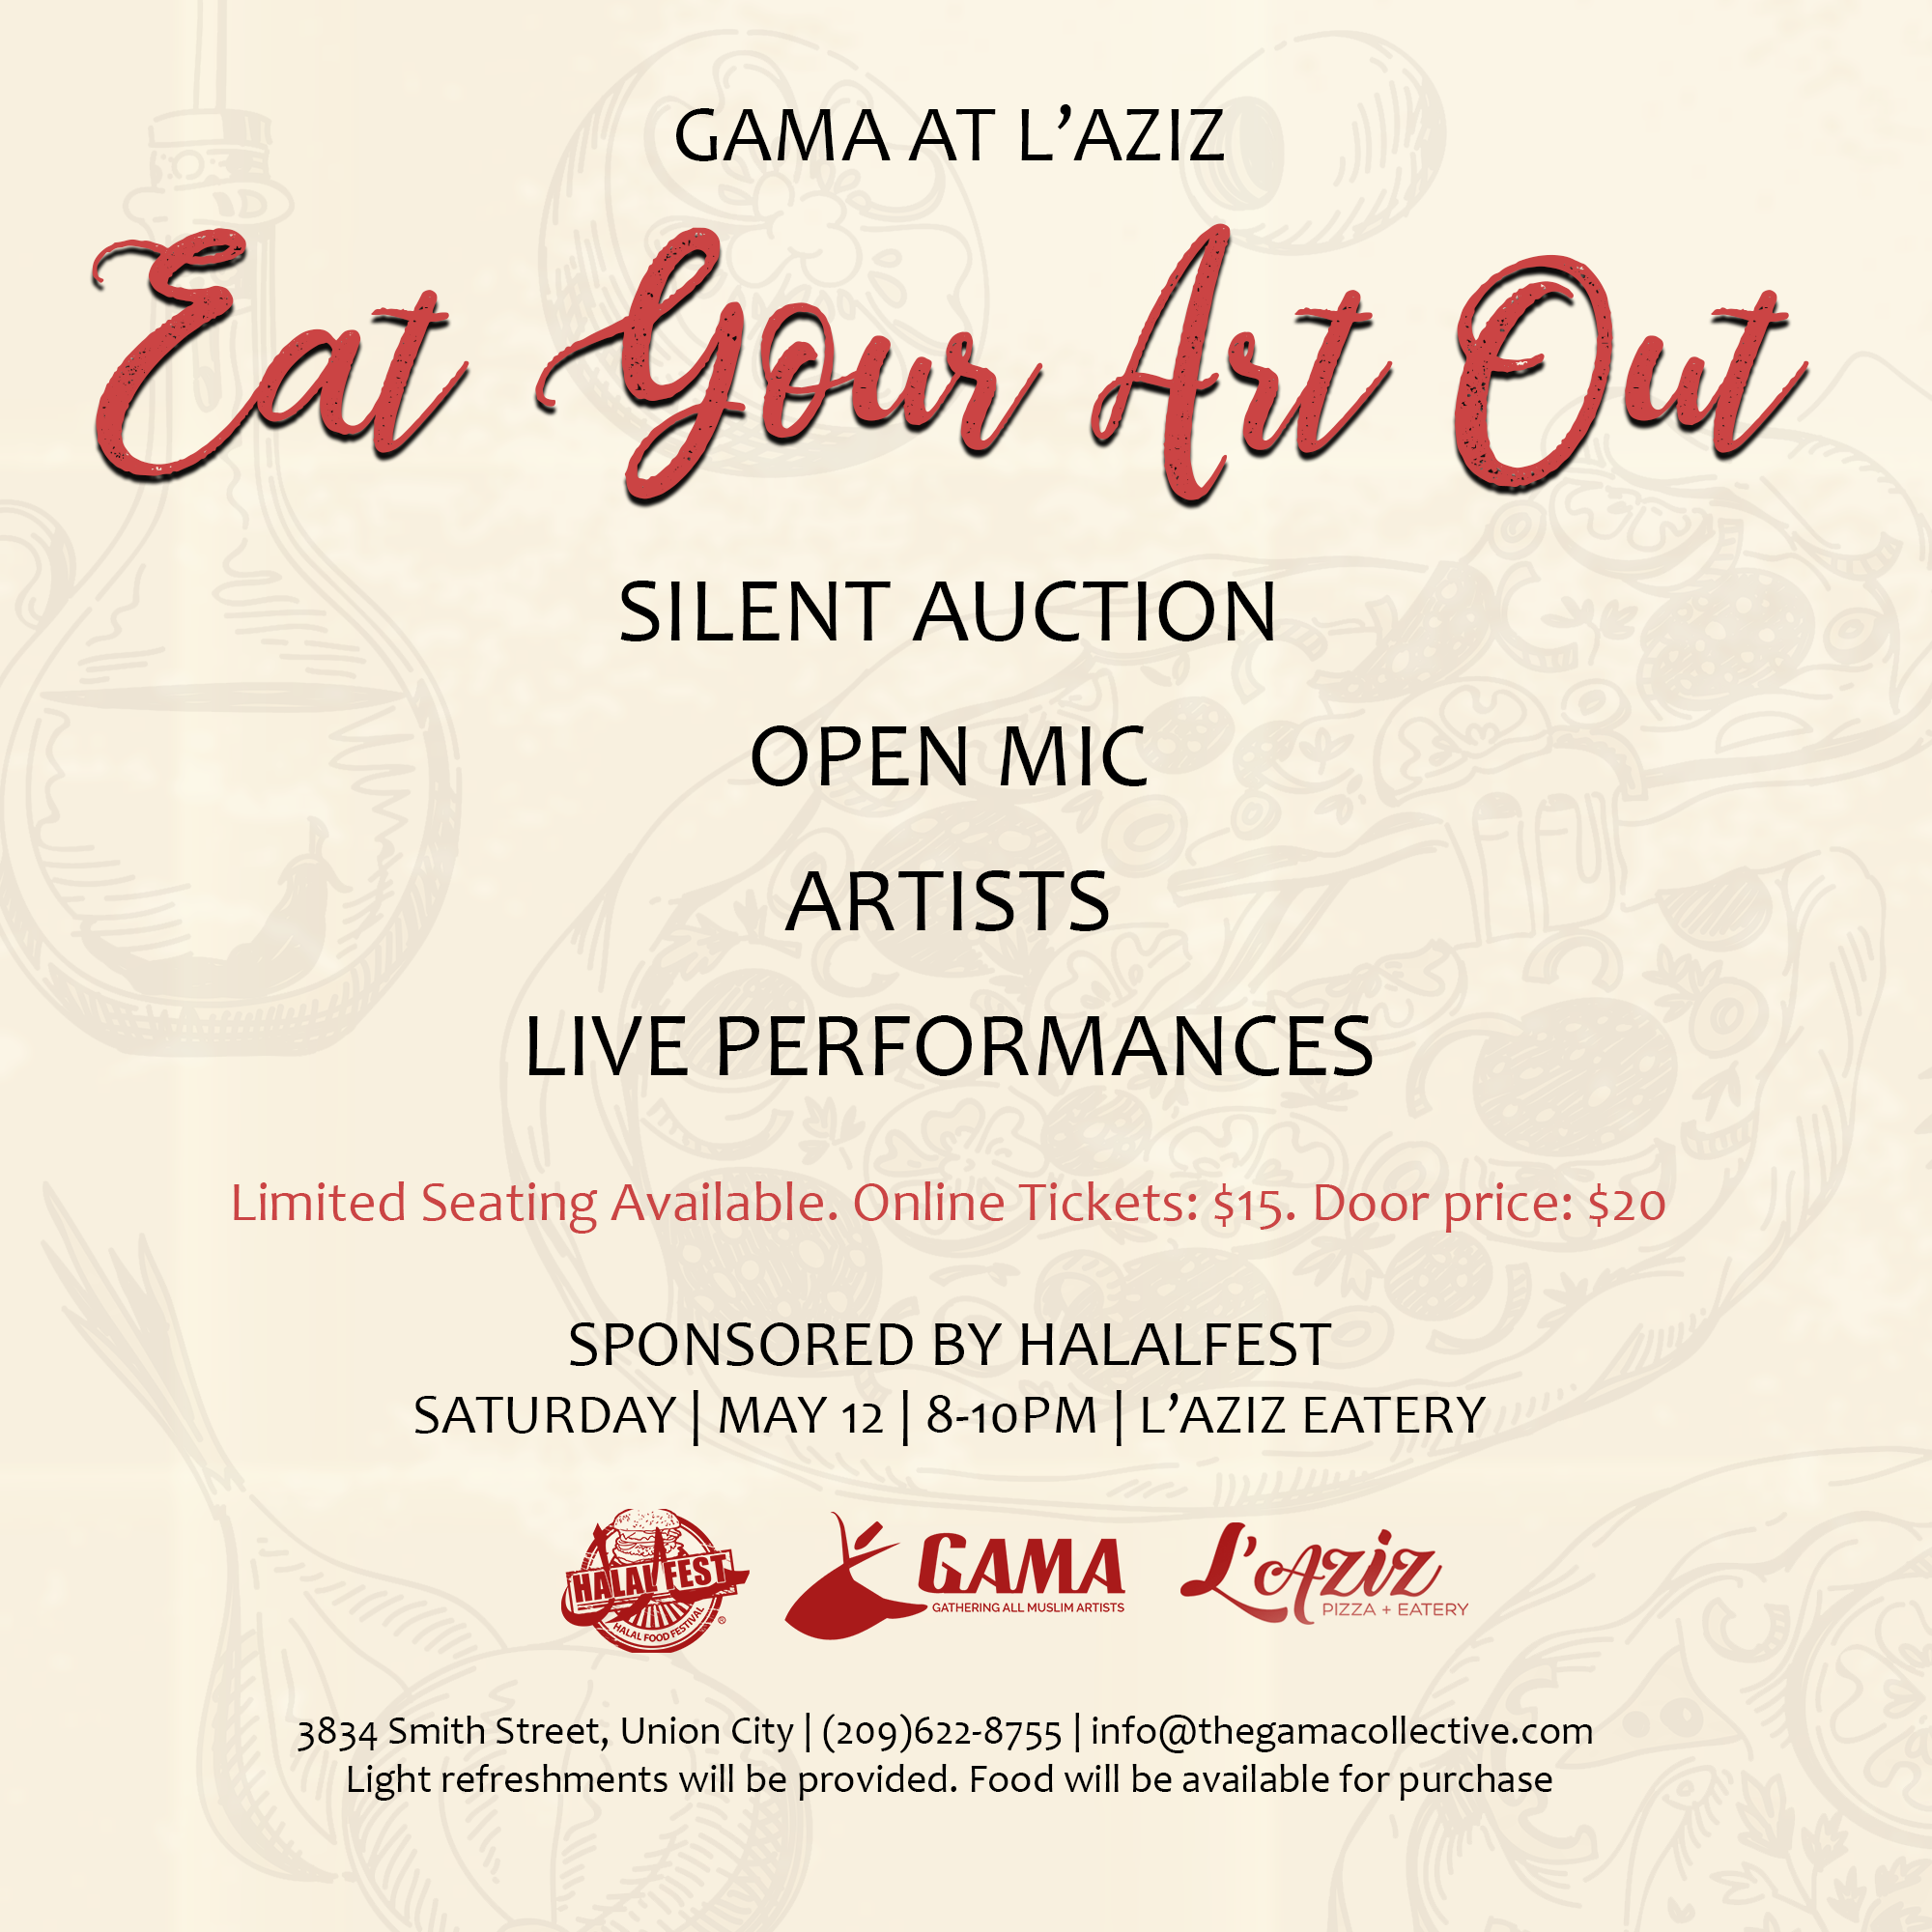 GAMA at L'Aziz: Eat Your Art Out